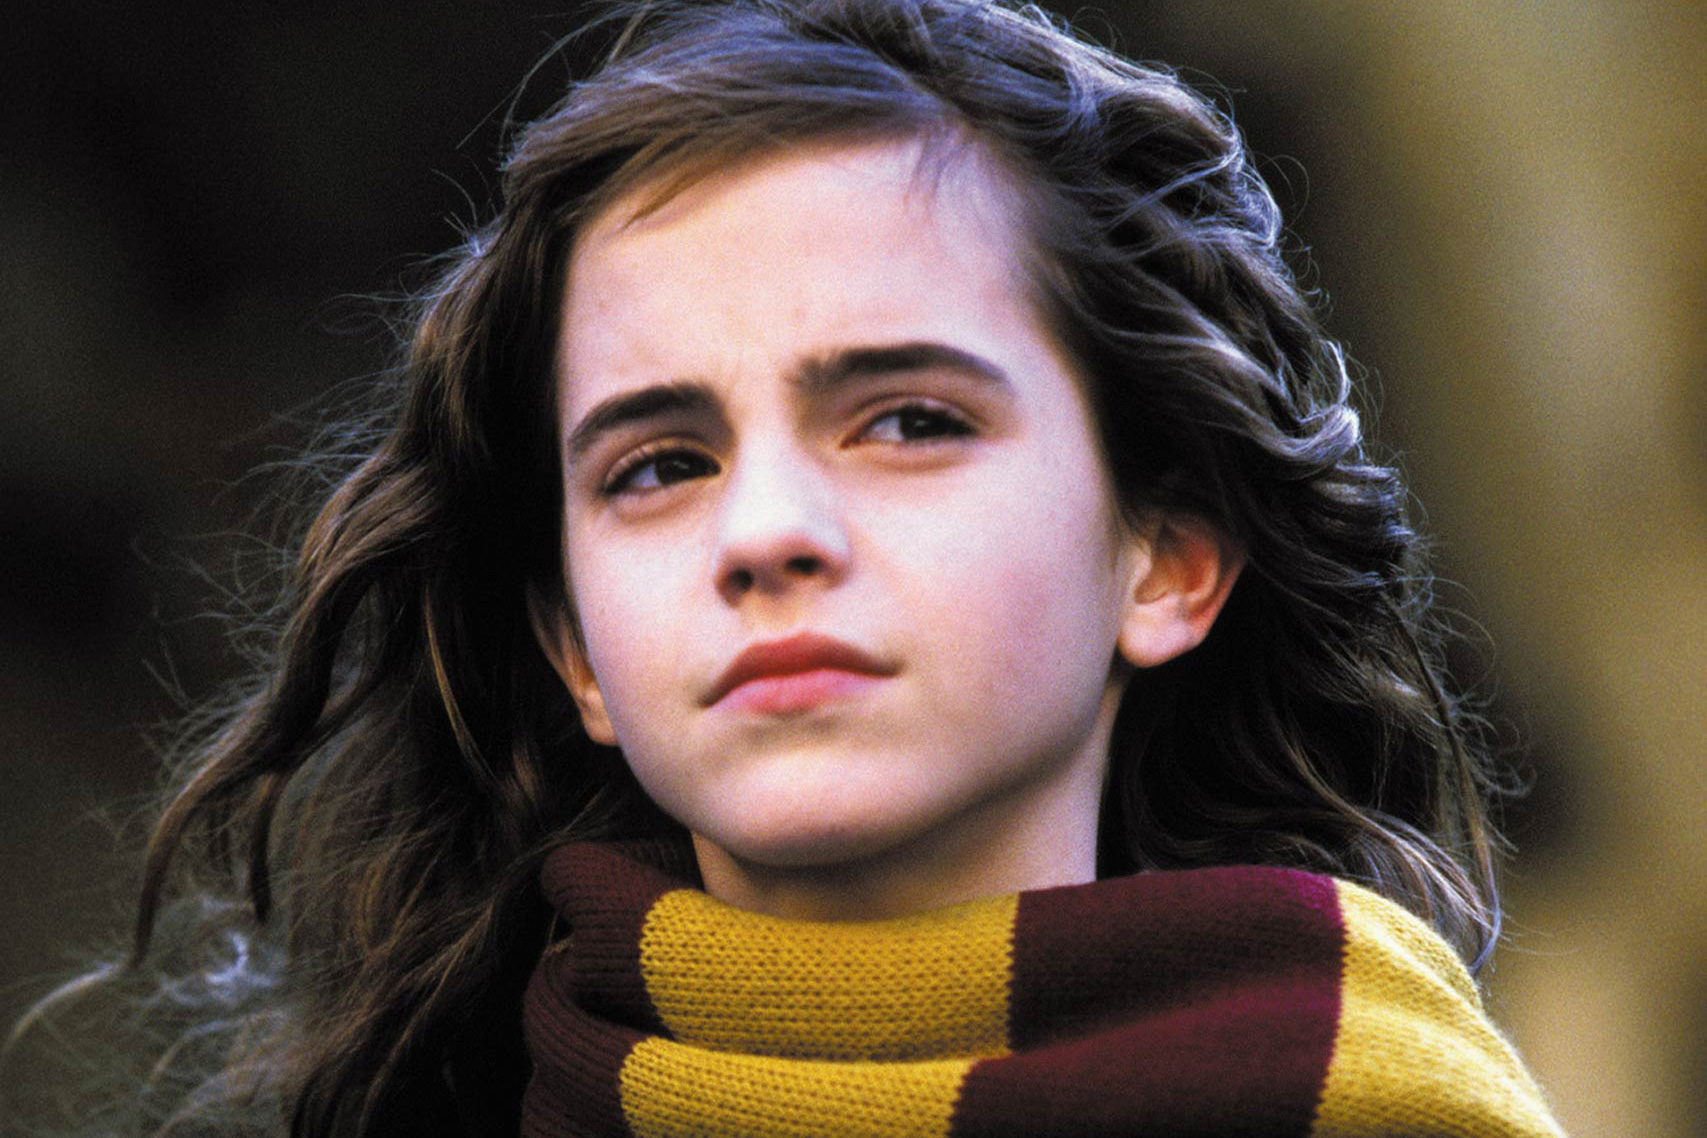 JK Rowling wishes Hermione Granger a very happy birthday!